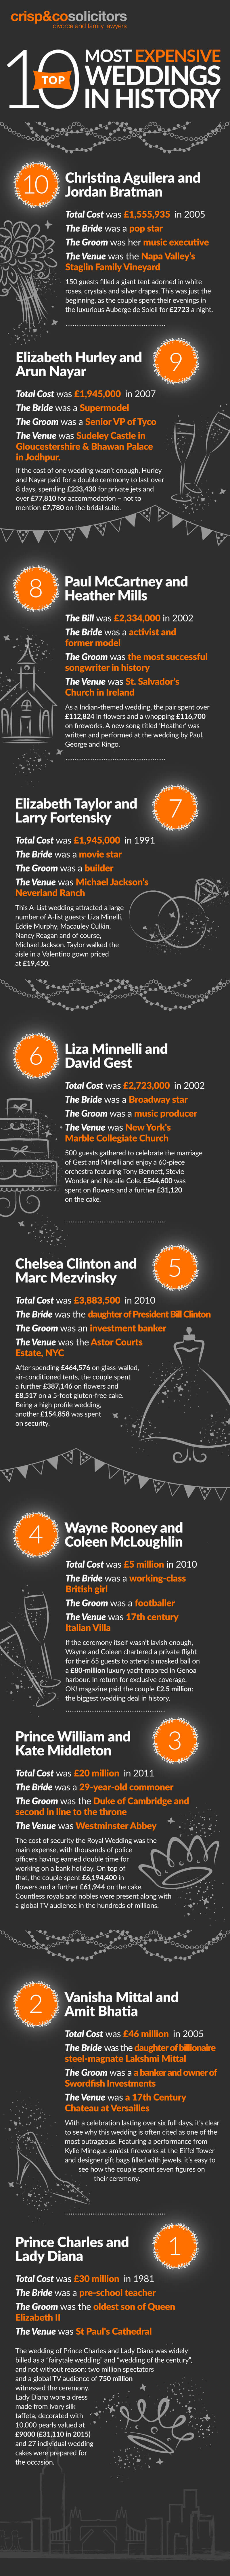 An infographic cataloguing the 10 most expensive weddings in history